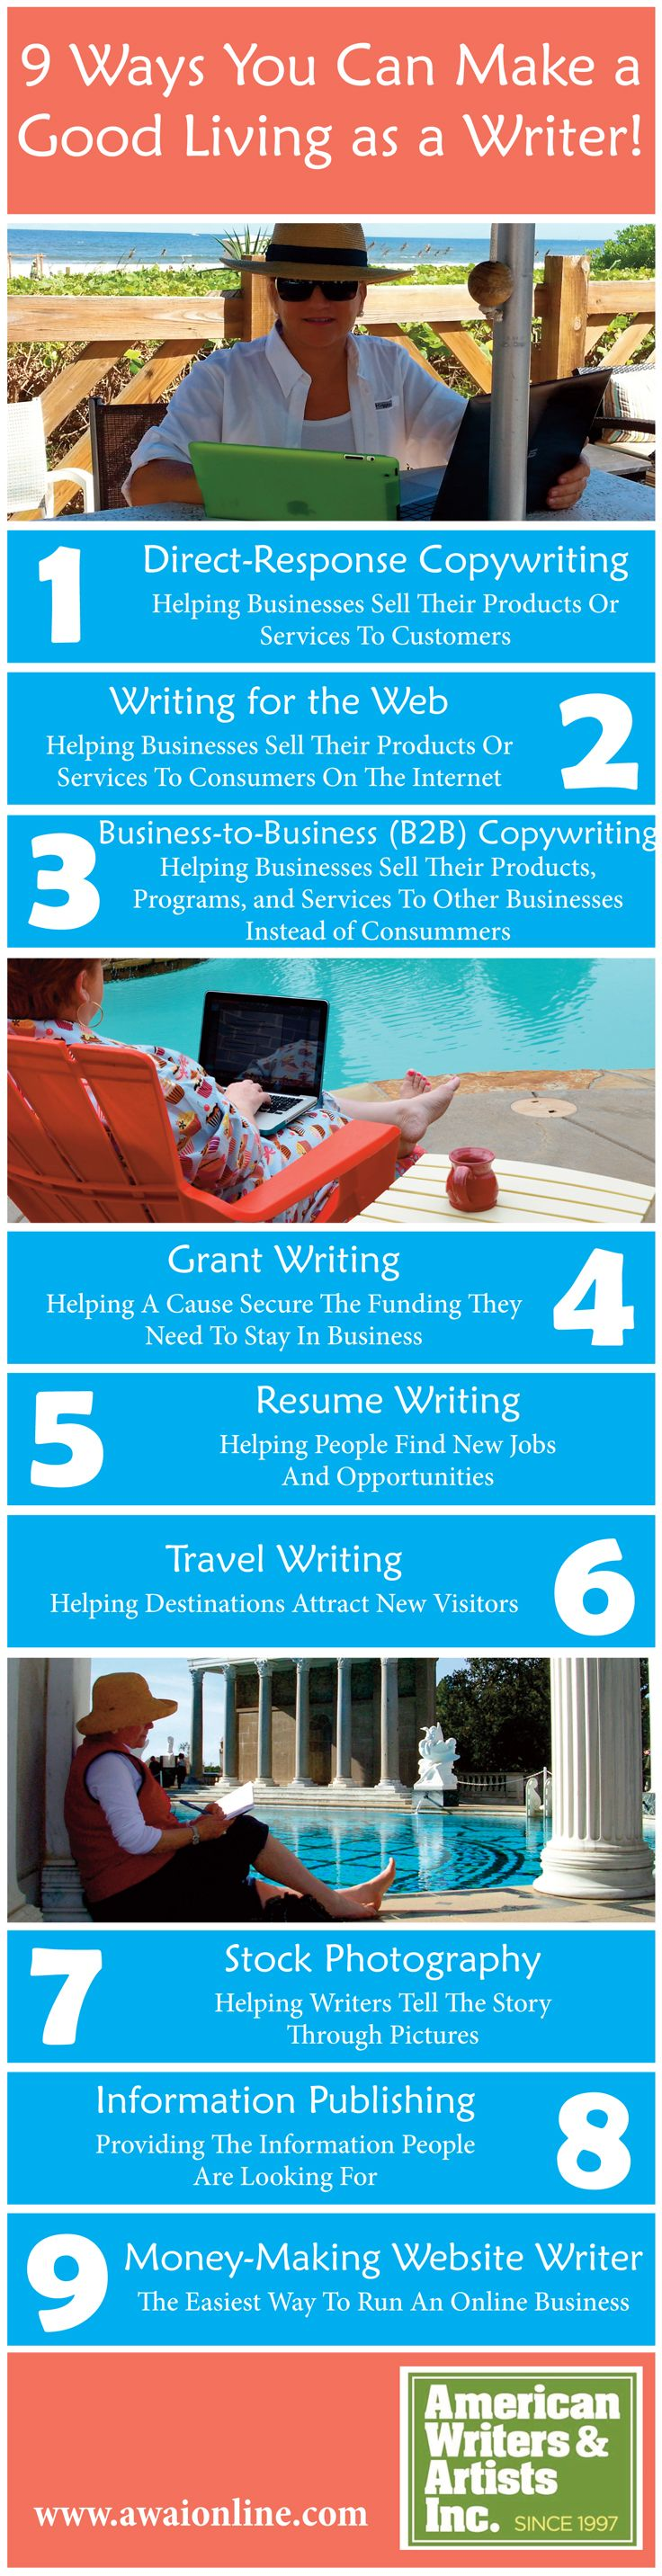 best images about barefoot writer career 17 best images about barefoot writer career writing skills and interview